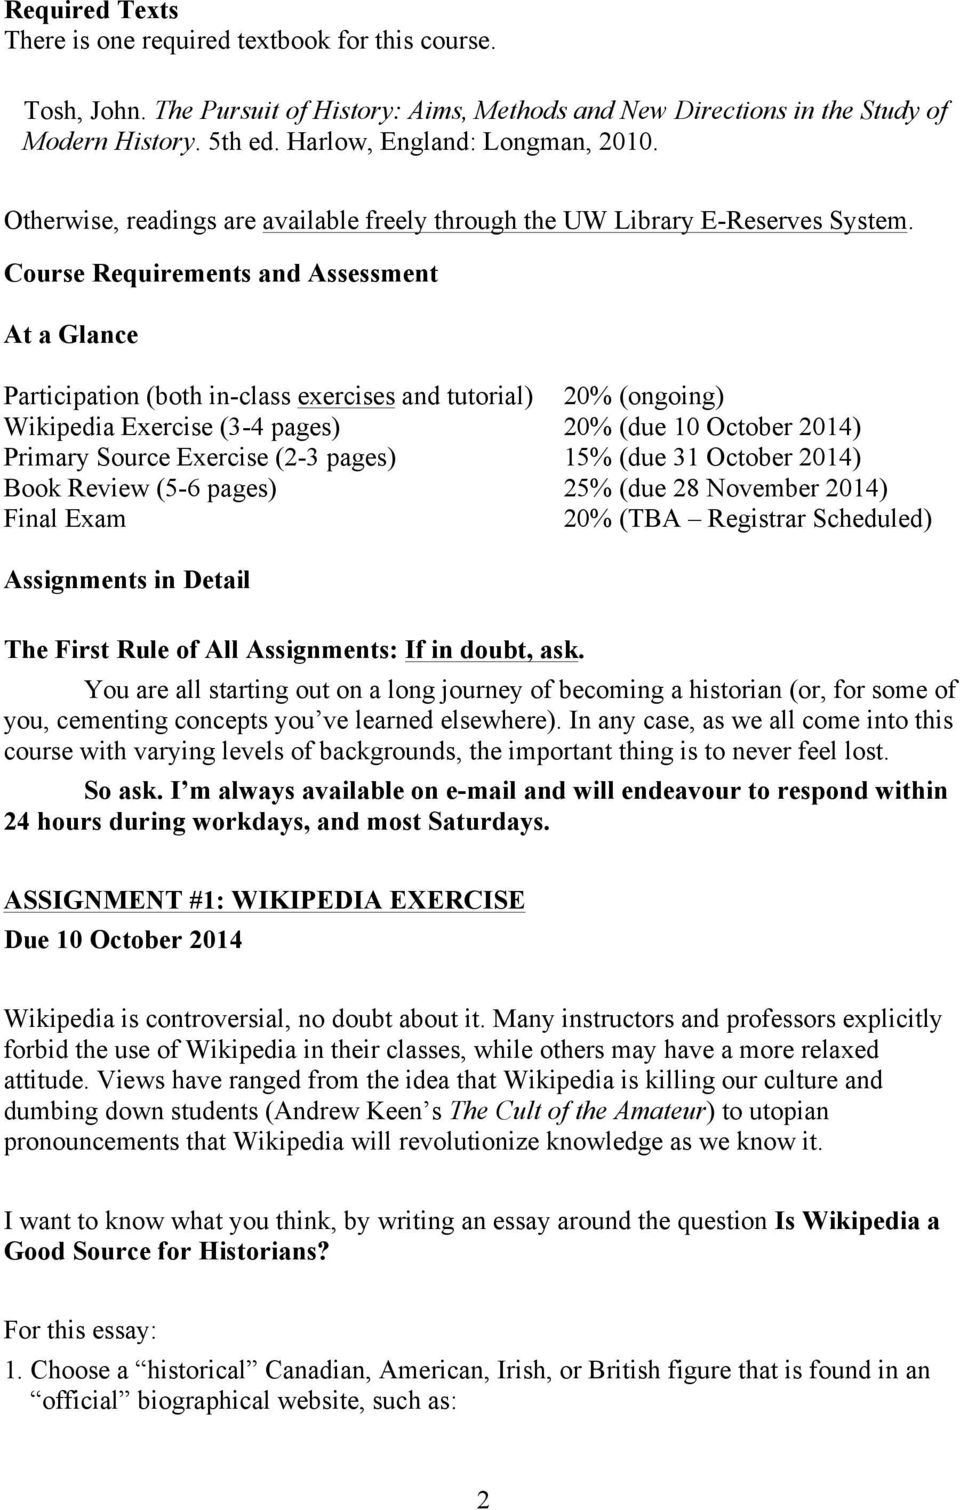 Course Requirements and Assessment At a Glance Participation (both in-class exercises and tutorial) 20% (ongoing) Wikipedia Exercise (3-4 pages) 20% (due 10 October 2014) Primary Source Exercise (2-3